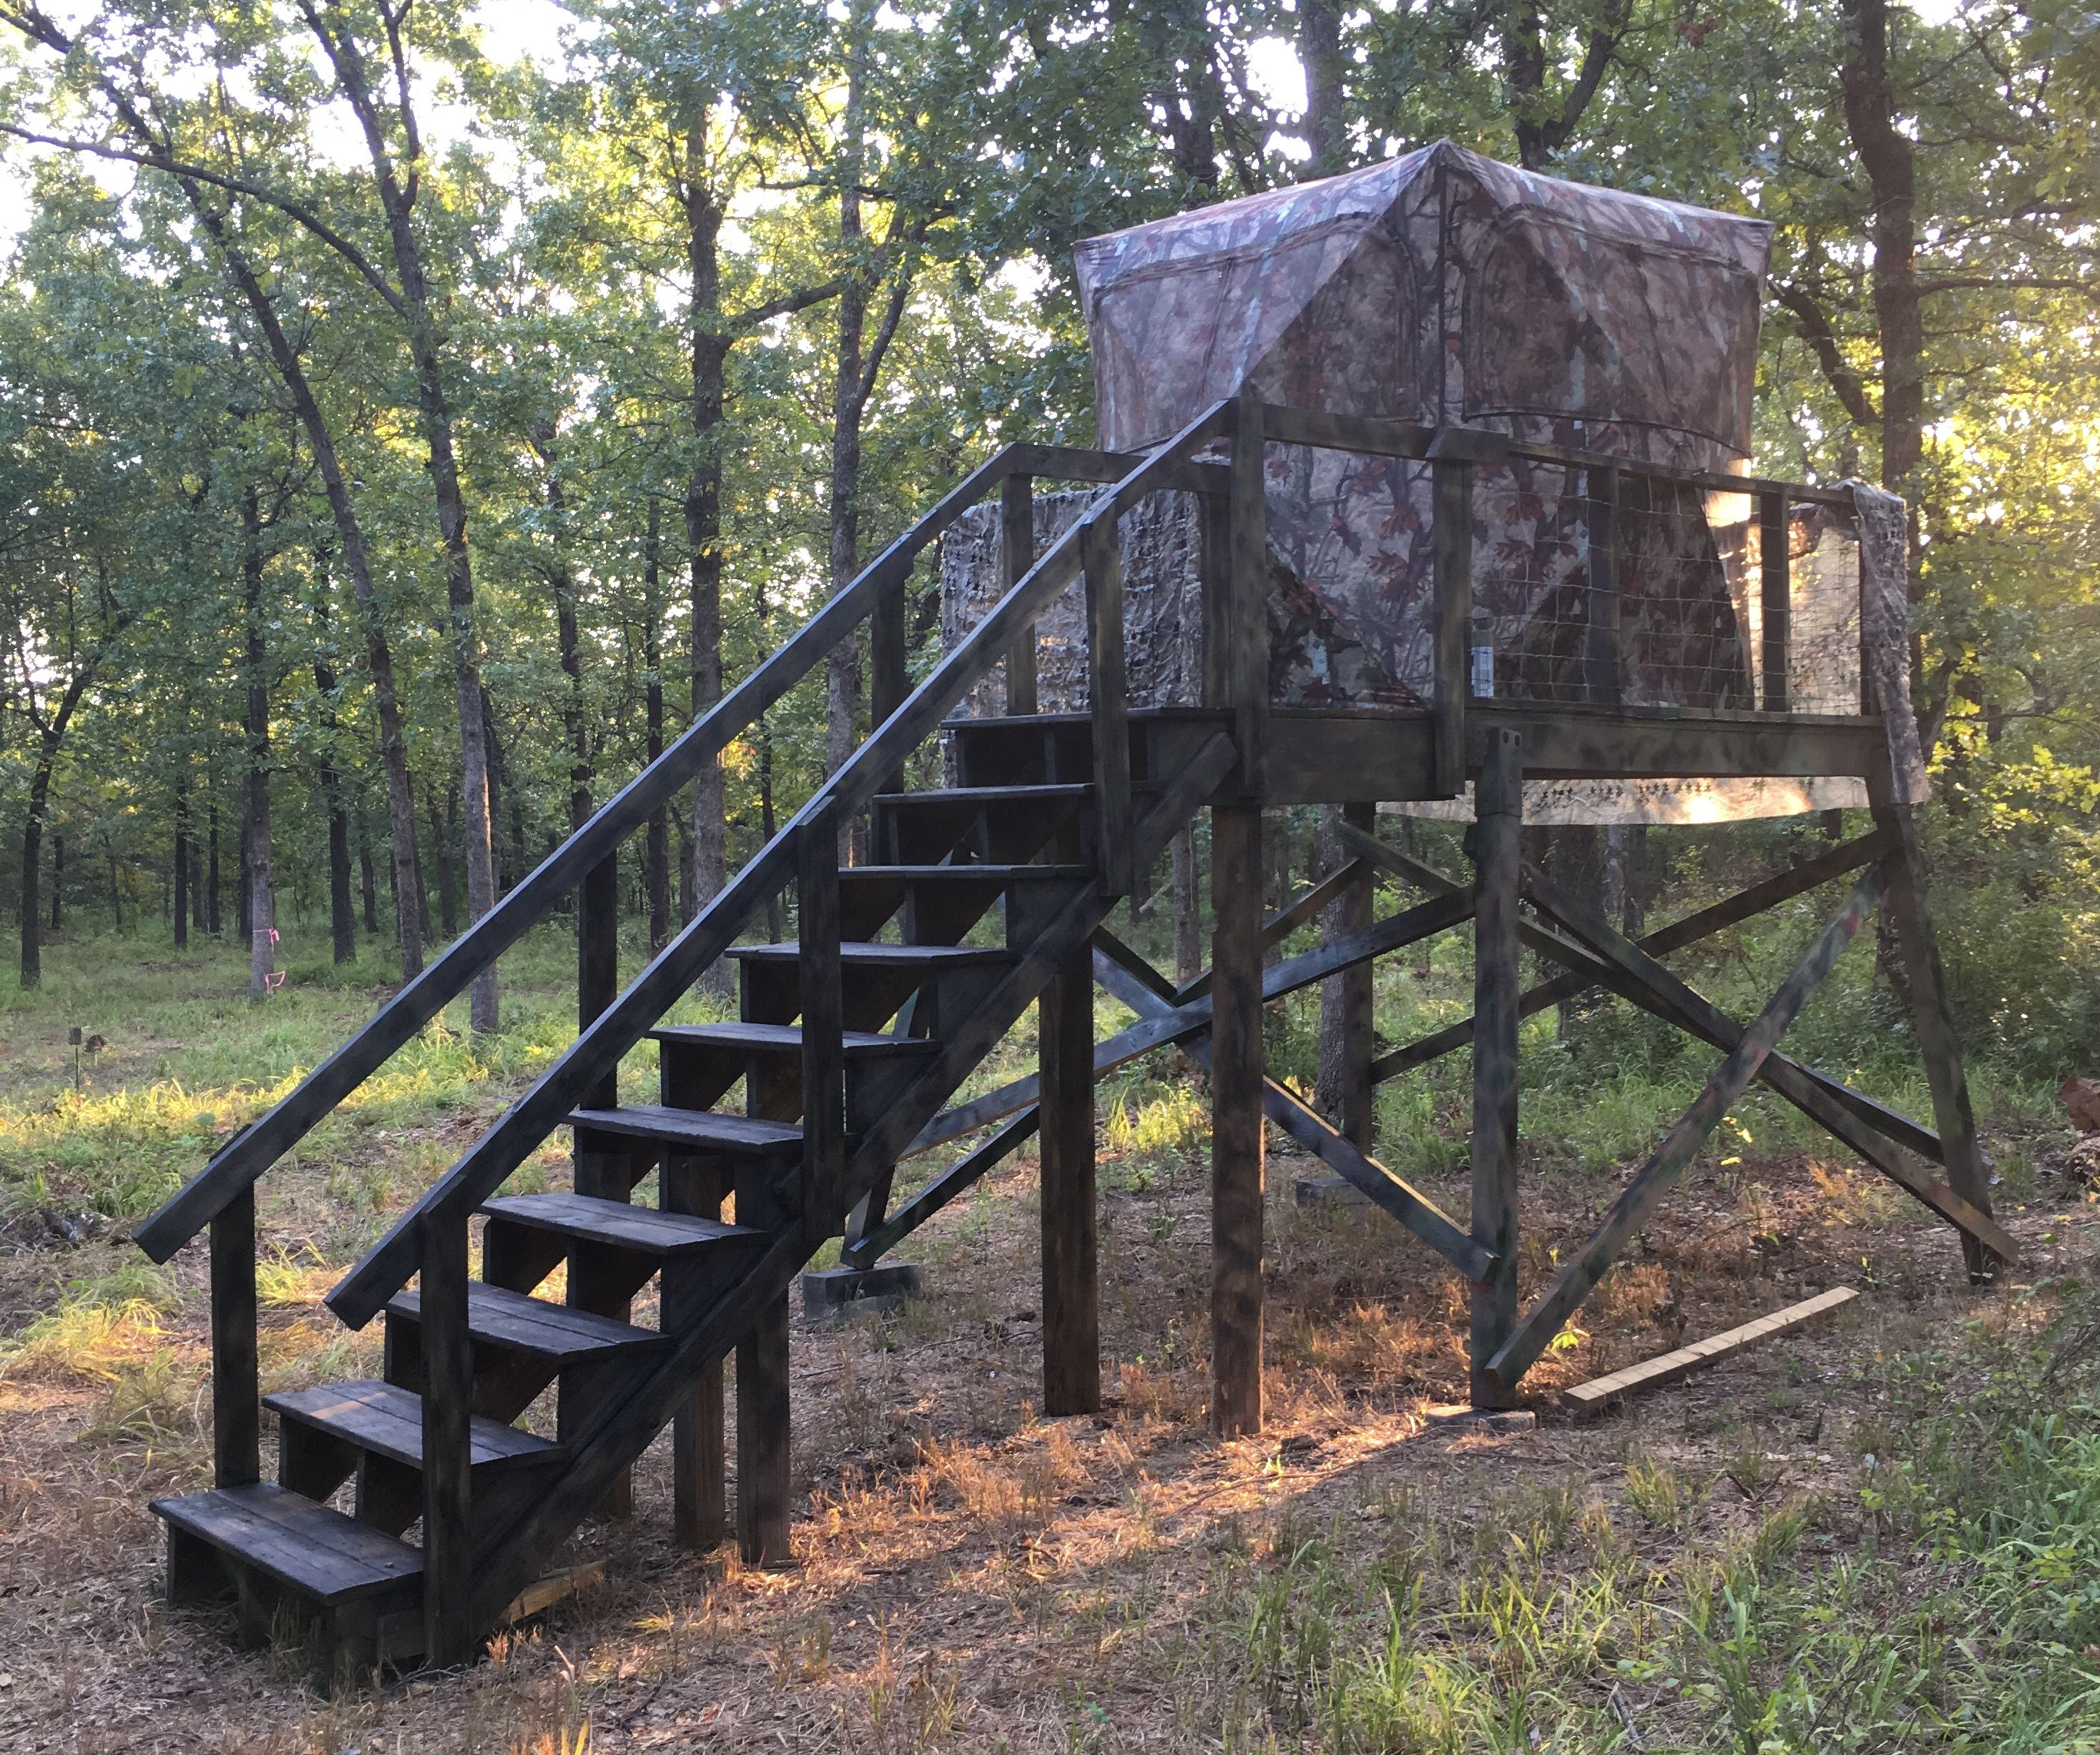 8 X8 Platform For Barronet Pop Up Deer Blind Deer Hunting Stands Deer Hunting Blinds Hunting Stands